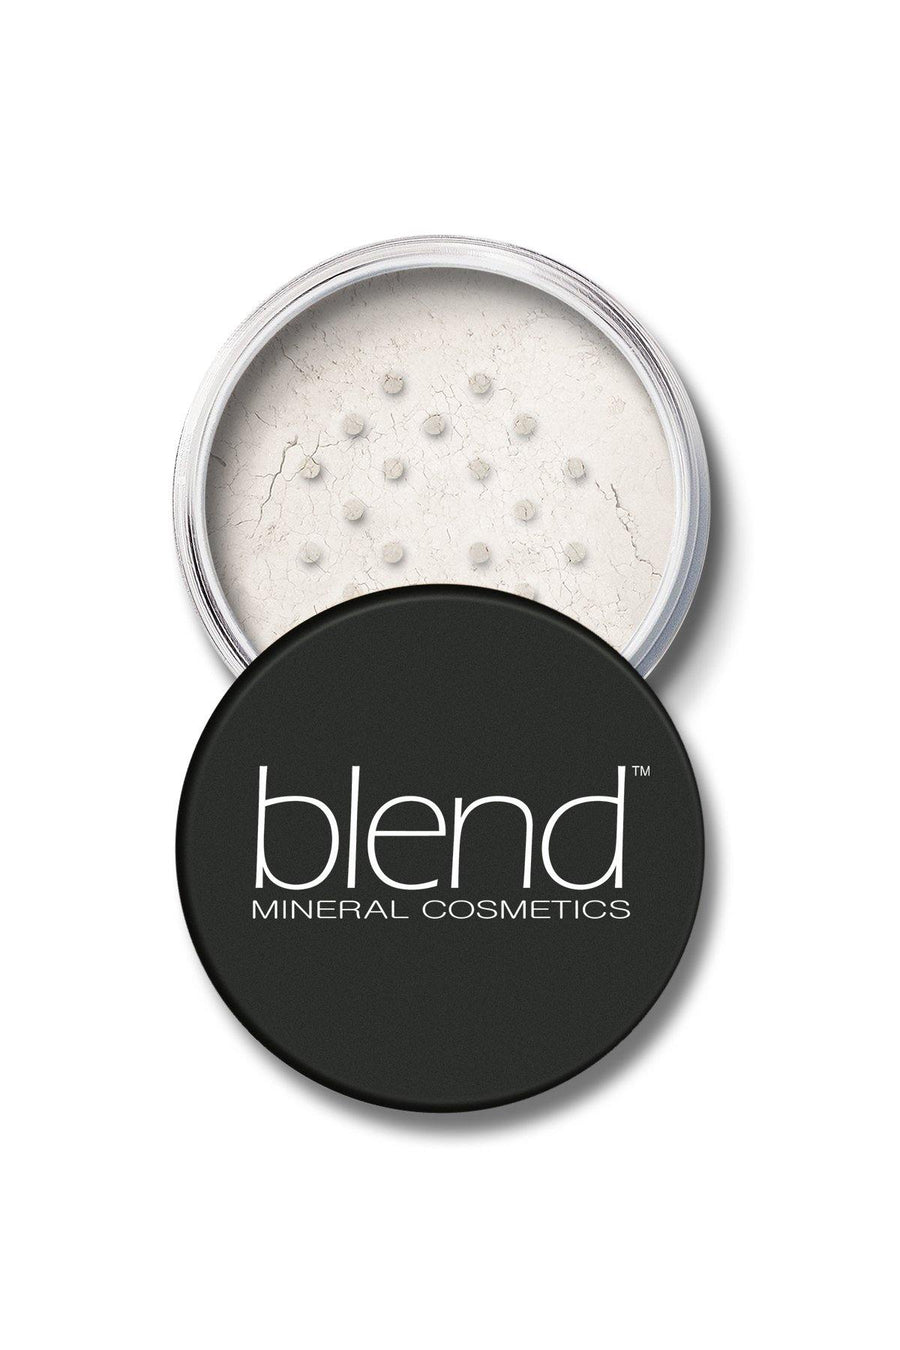 Extreme CloseUp HD Mineral Finishing Powder - Blend Mineral Cosmetics